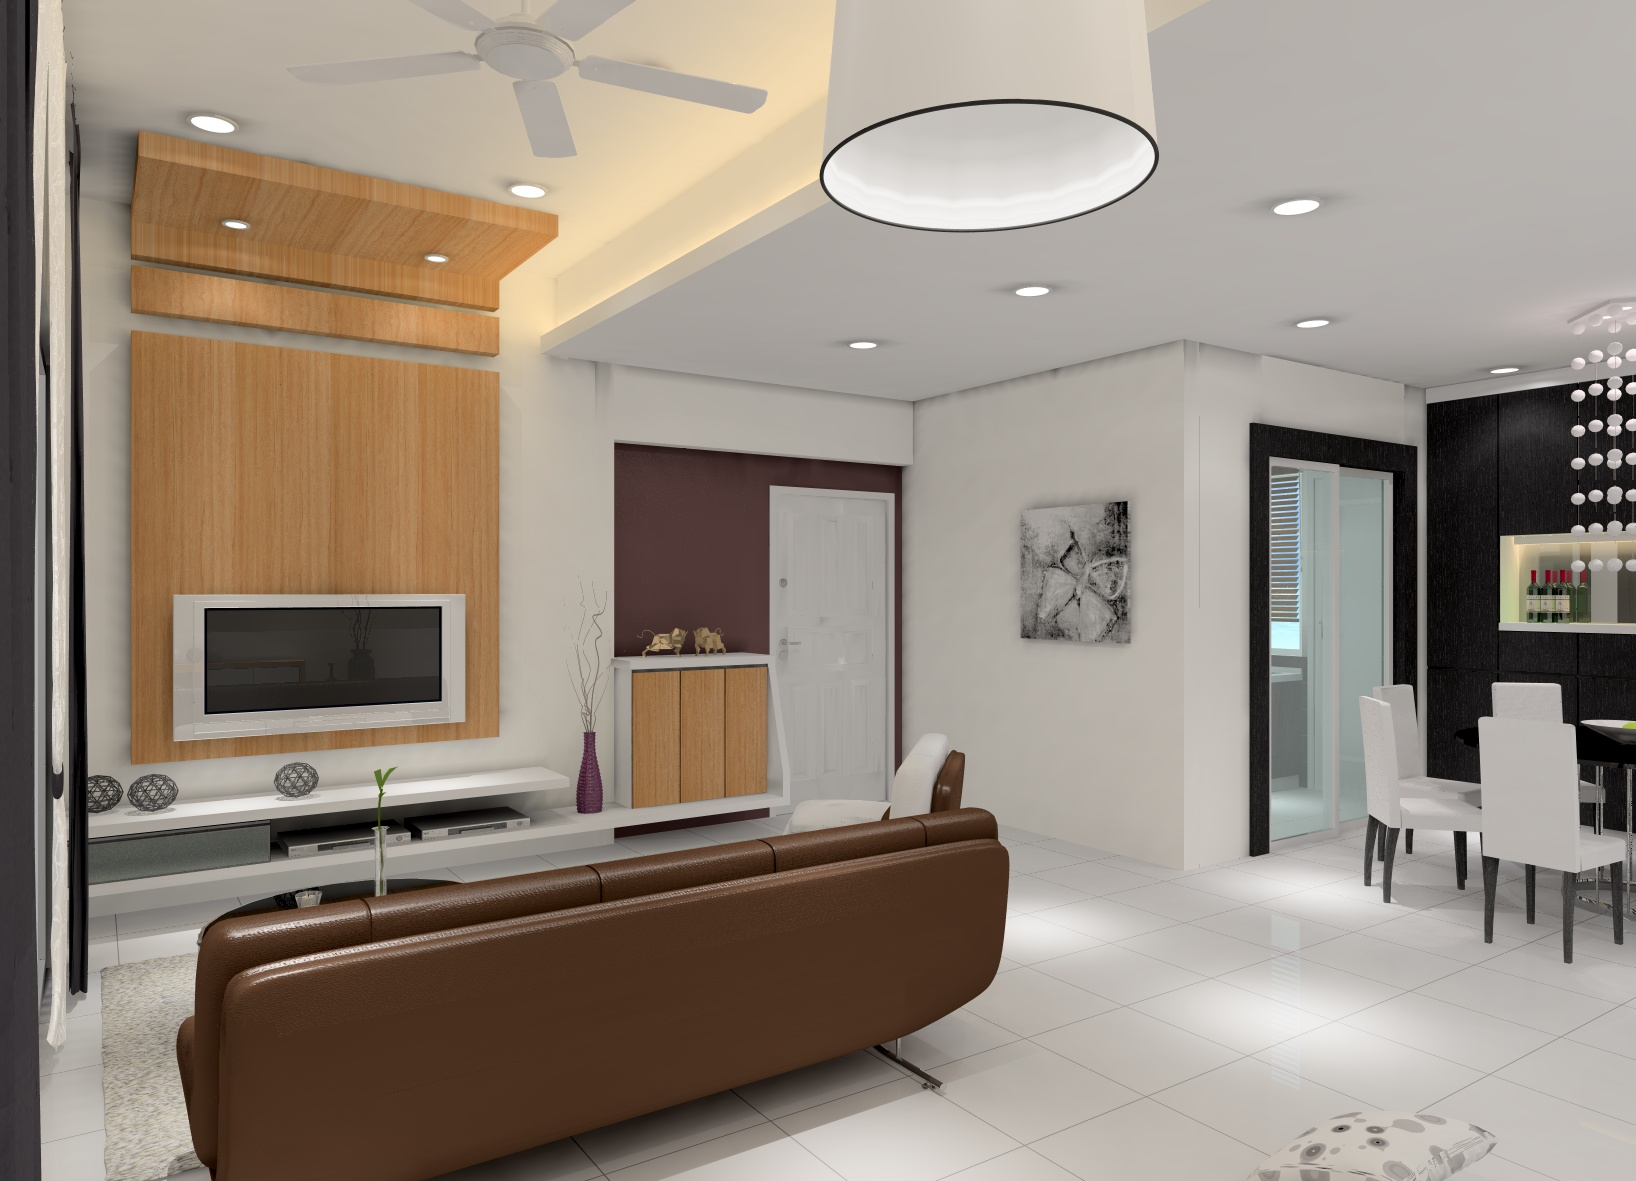 Best Home Interior Design Decor interior design malaysia l expert interior design & renovation